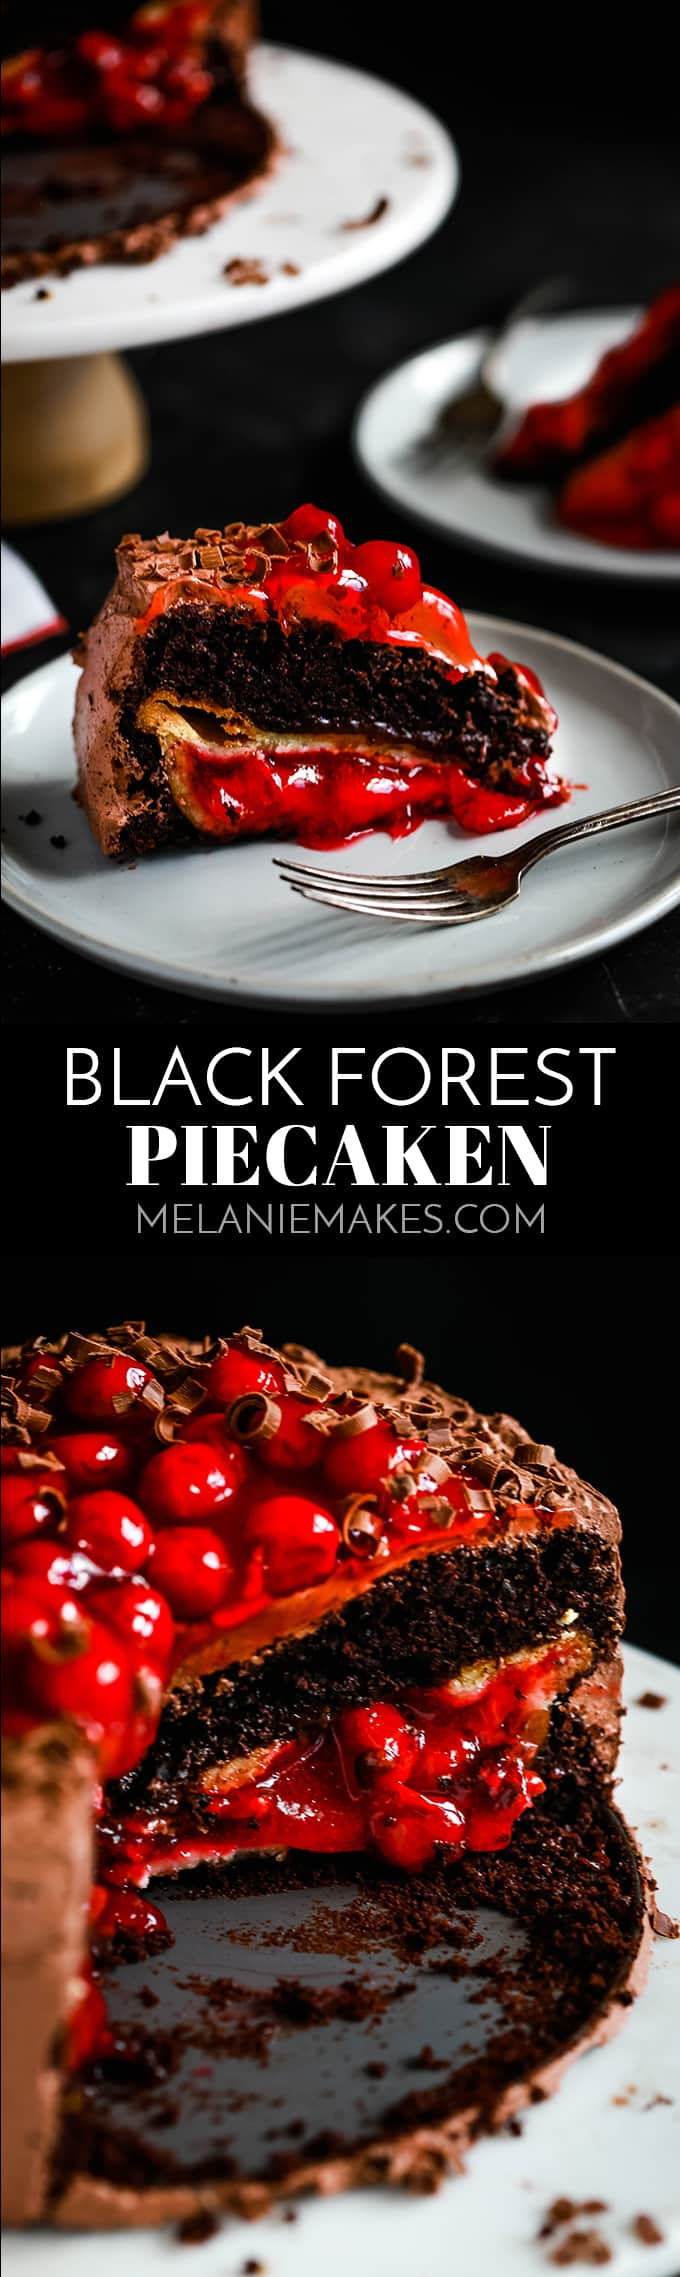 What is a Black Forest Piecaken, you ask?  A whole cherry pie is baked within a fudgy chocolate cake and it takes just minutes to prepare! #blackforest #blackforestcake #chocolatecake #cherrypie #pie #chocolate #frosting